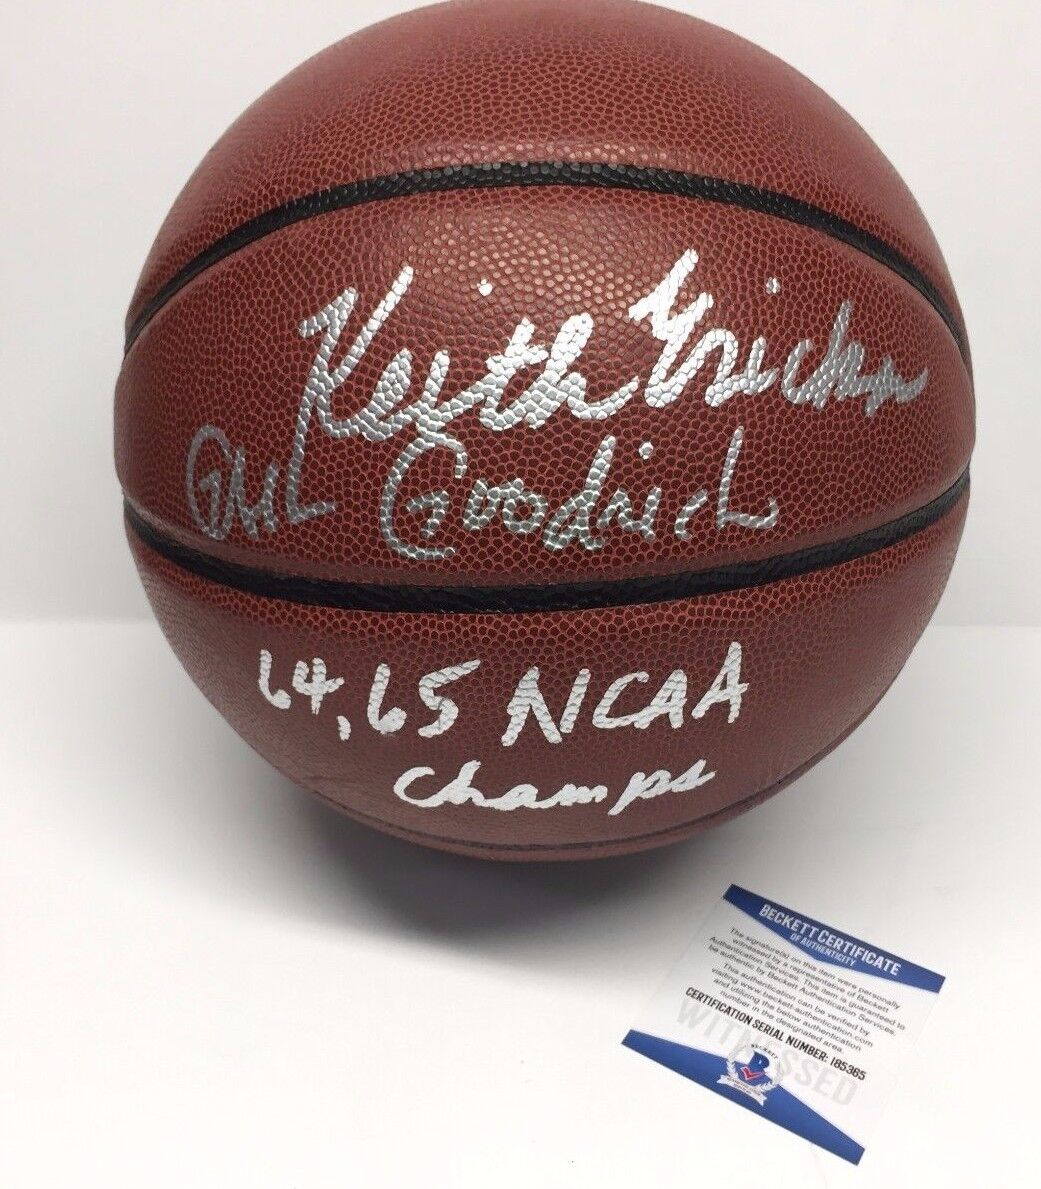 Keith Erickson & Gail Goodrich Signed Basketball